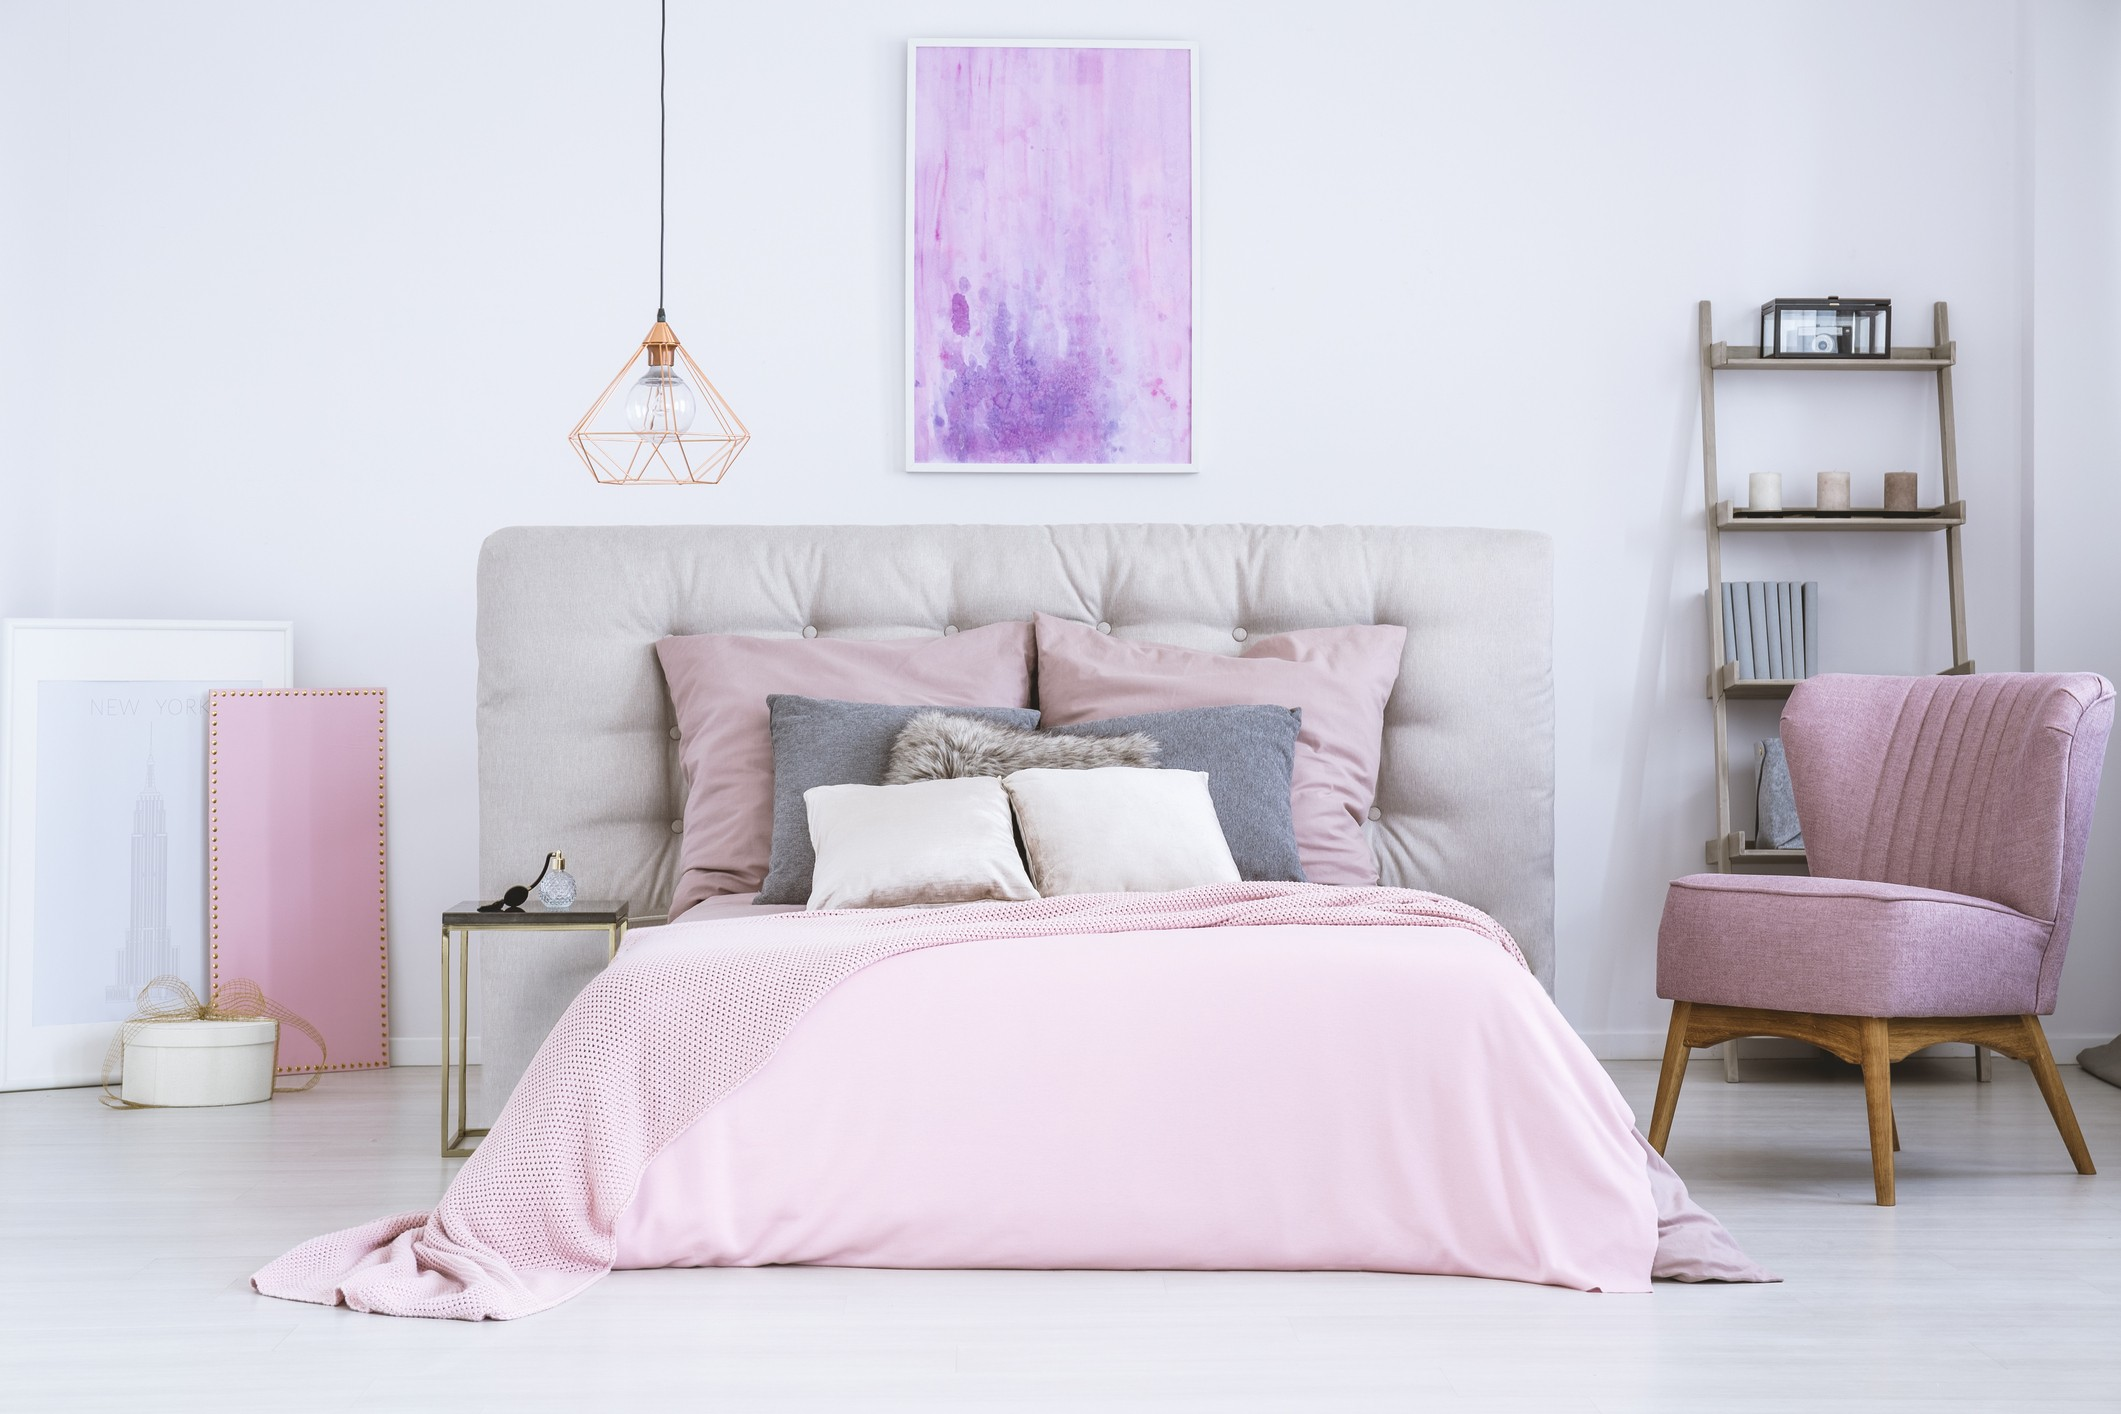 Bedroom with pink accents